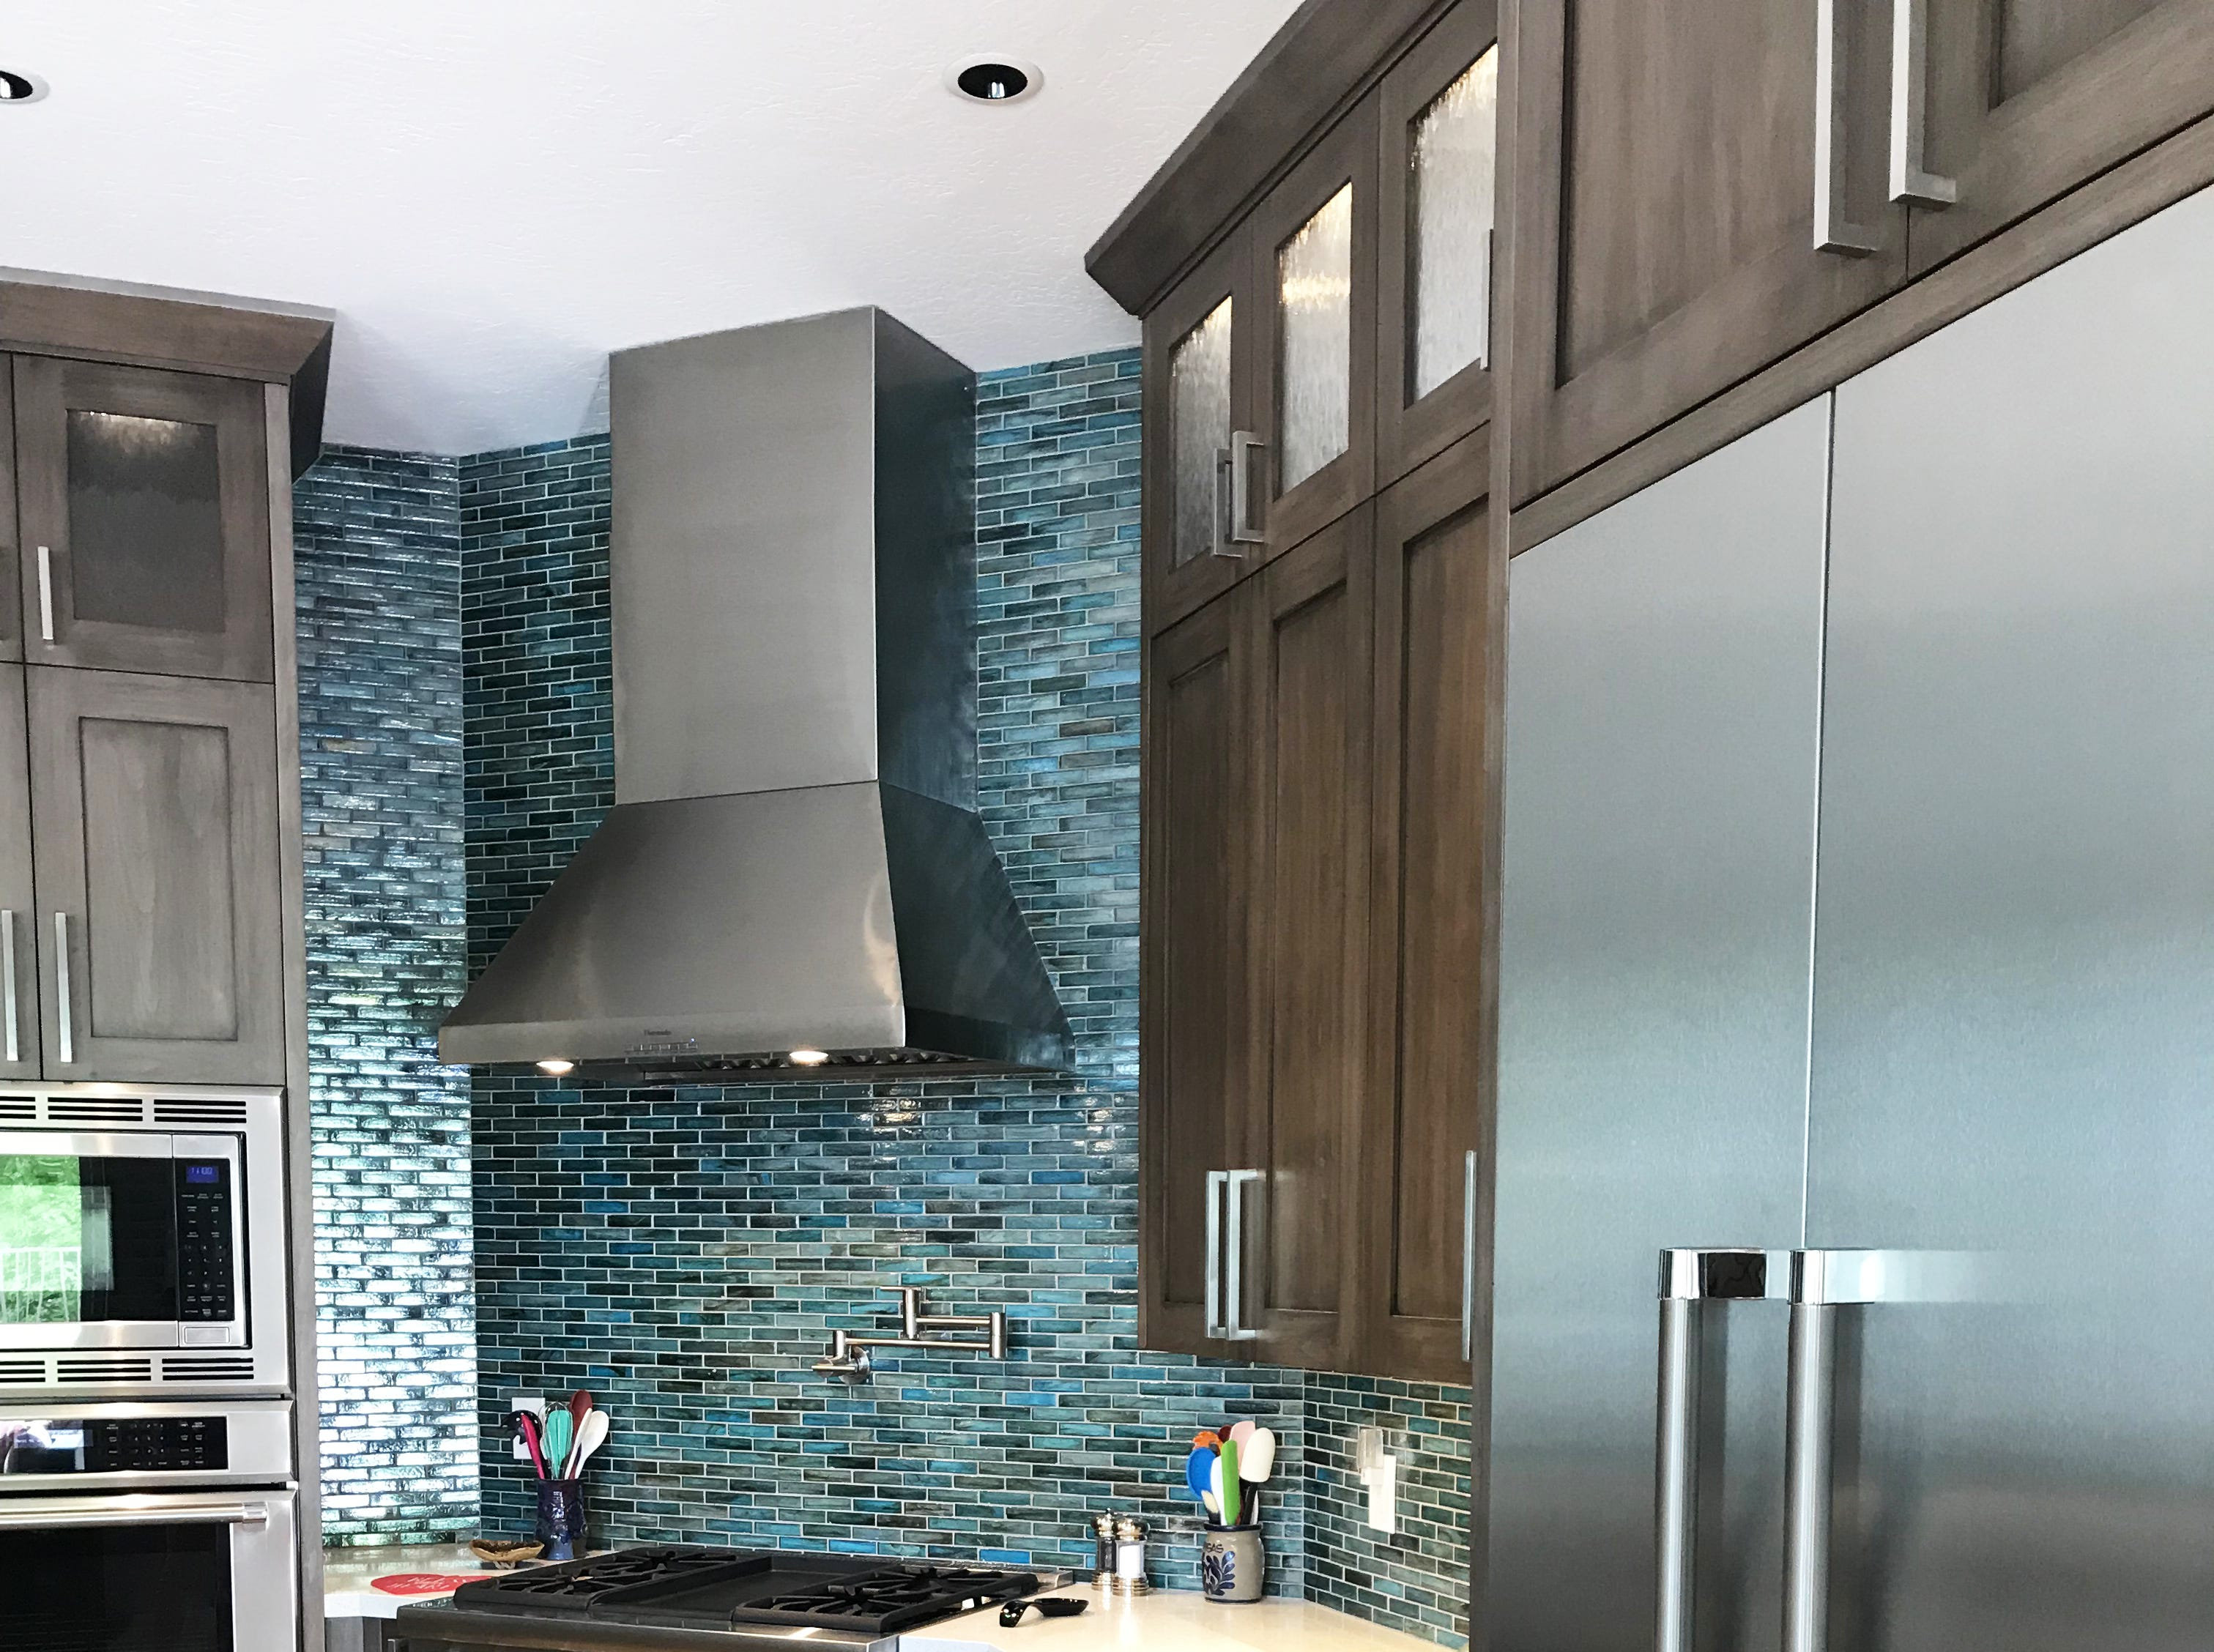 When the old kitchen was demolished, Dave focused on the plumbing and electrical work, while Mona and interior designer Arteaga found the stained alder wood cabinets and backsplash tiles.